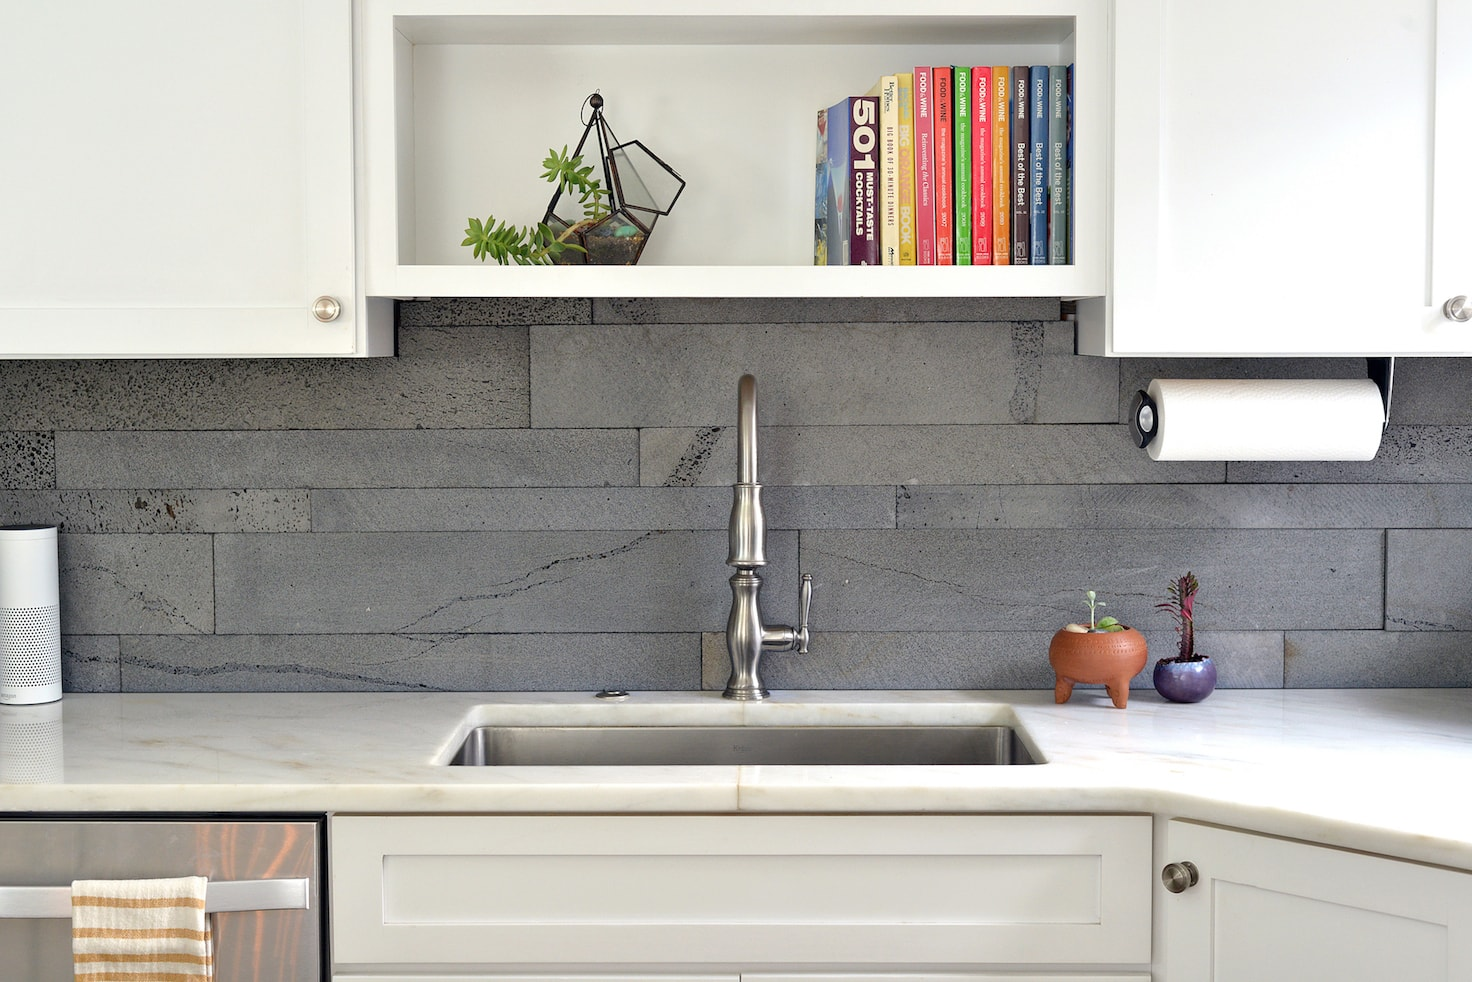 Norstone Lava Stone Planc In Platinum Color Used On A Modern Kitchen  Backsplash With Cabinets And